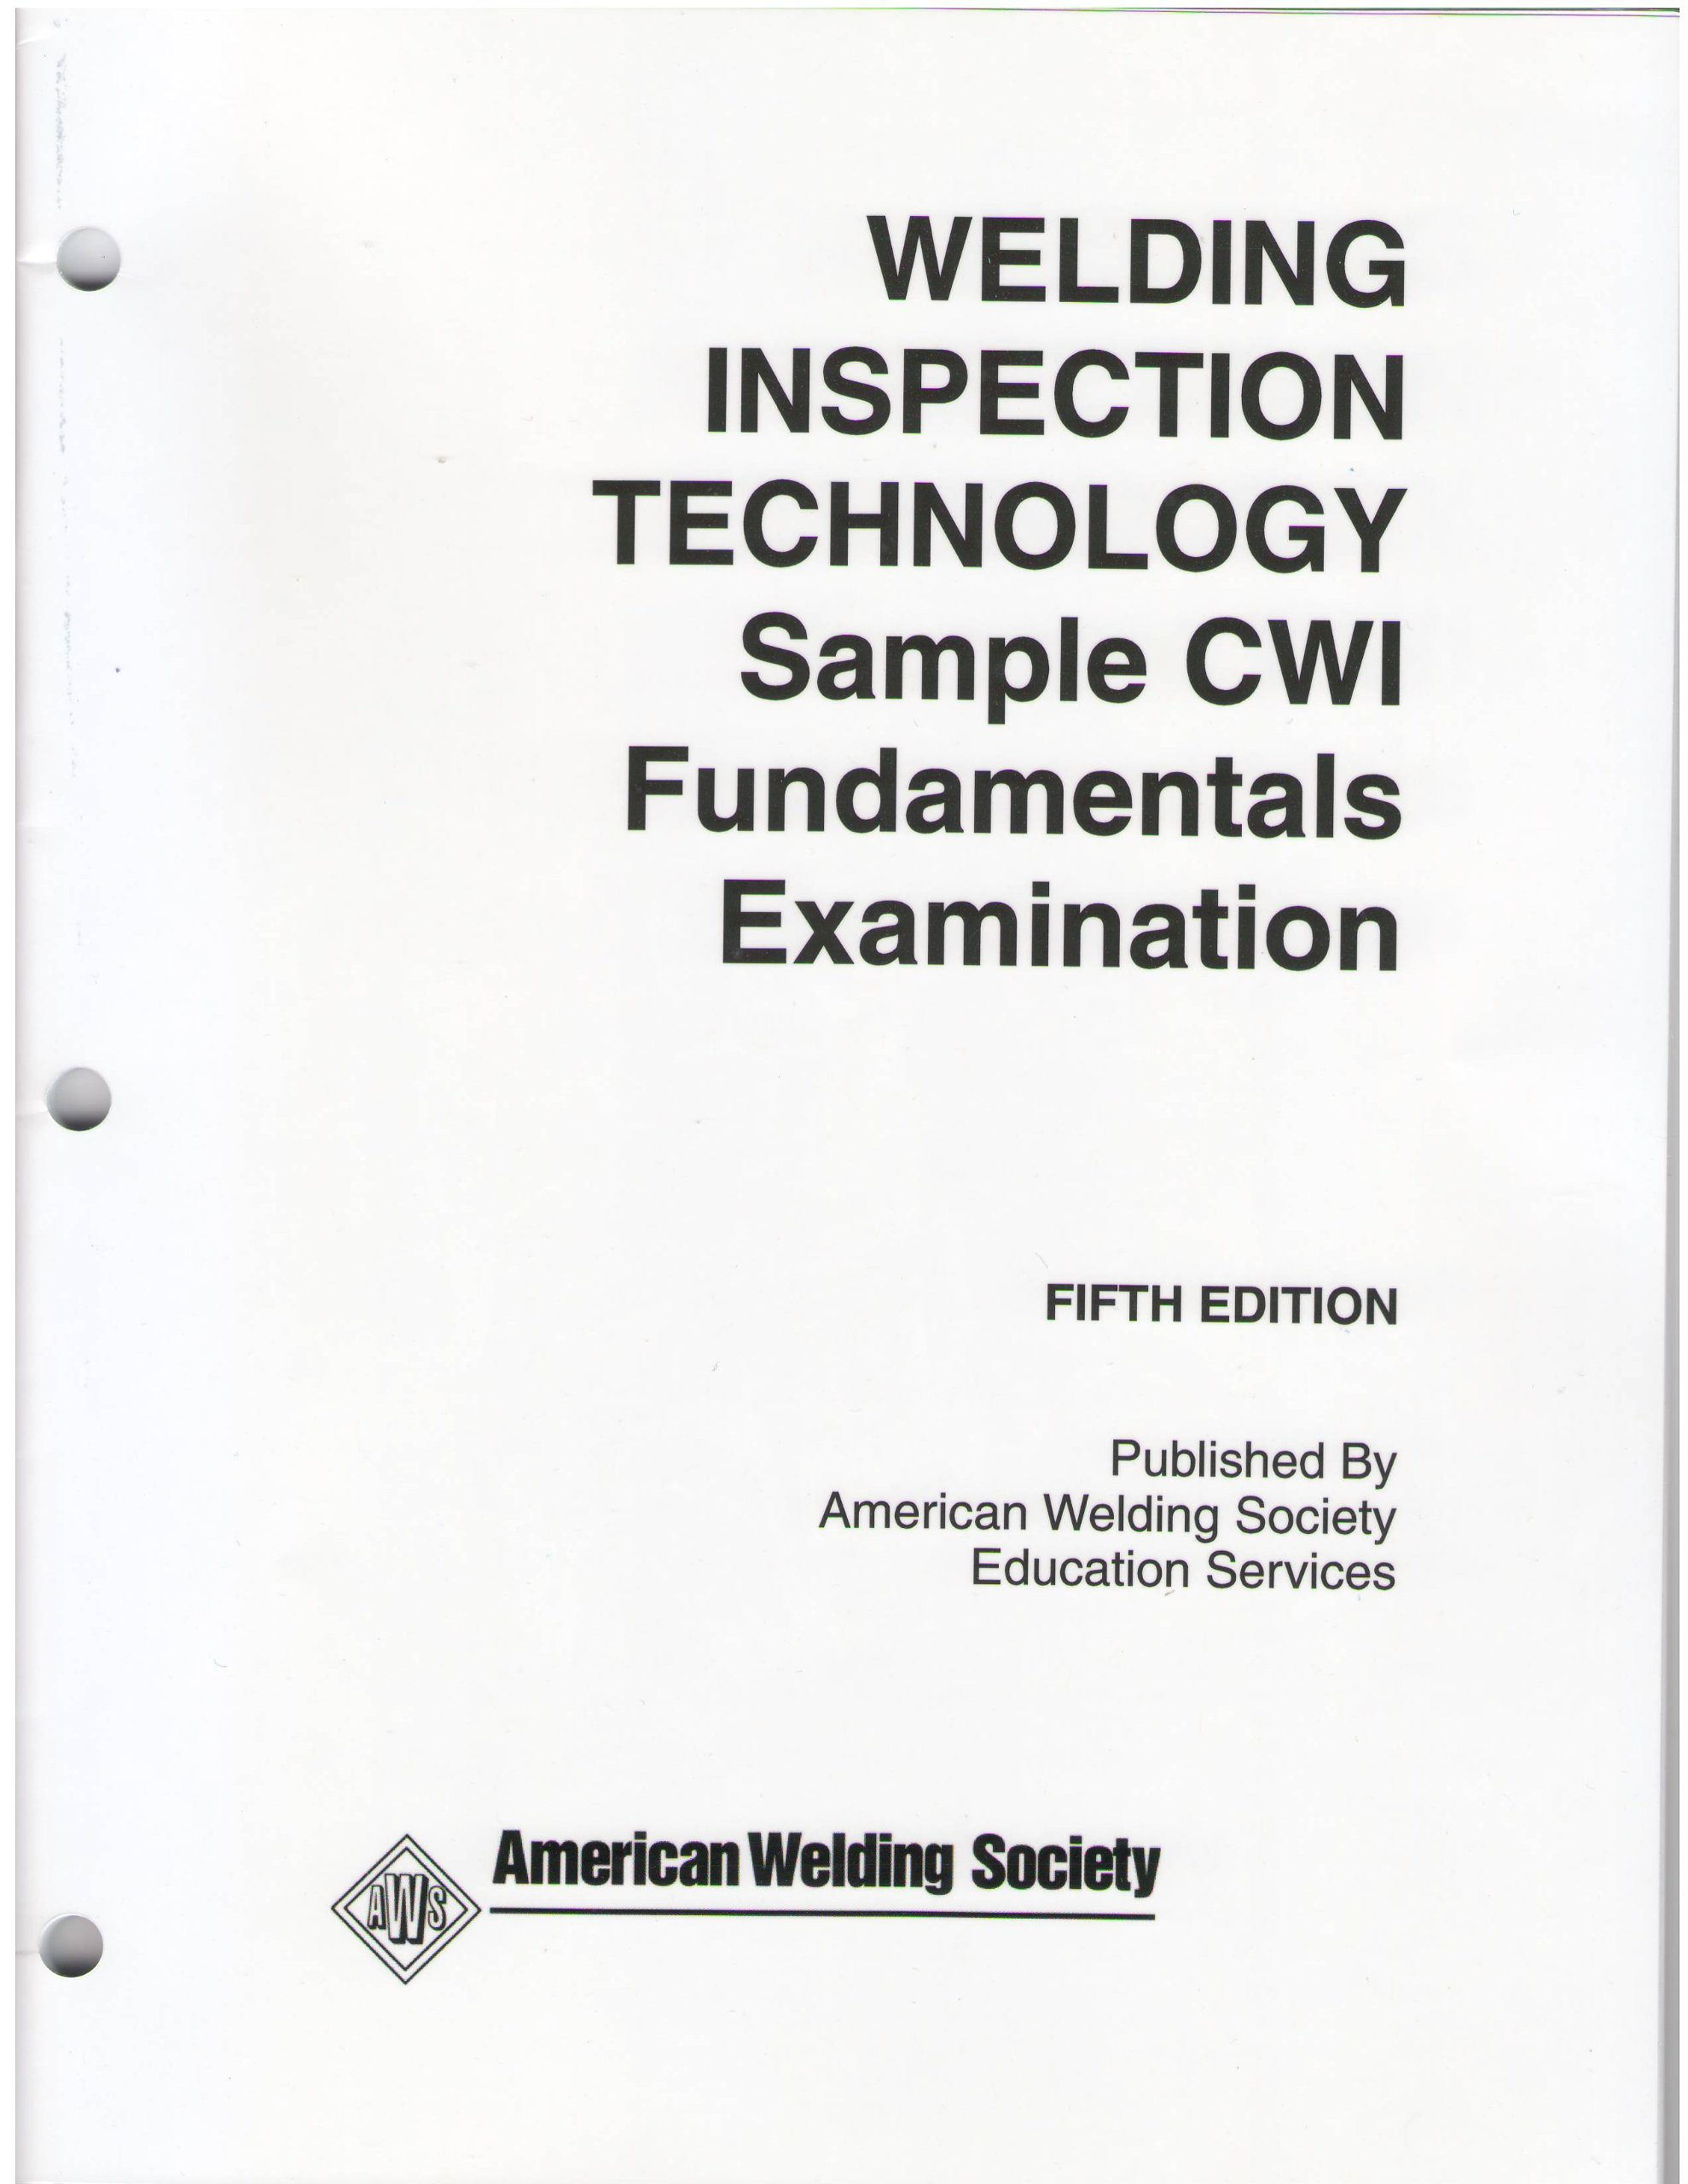 Welding Inspection Technology Sample CWI Fundamentals Examination (Welding  Inspection Sample CWI Fundamentals Examinations Fifth Edition): American  Welding ...